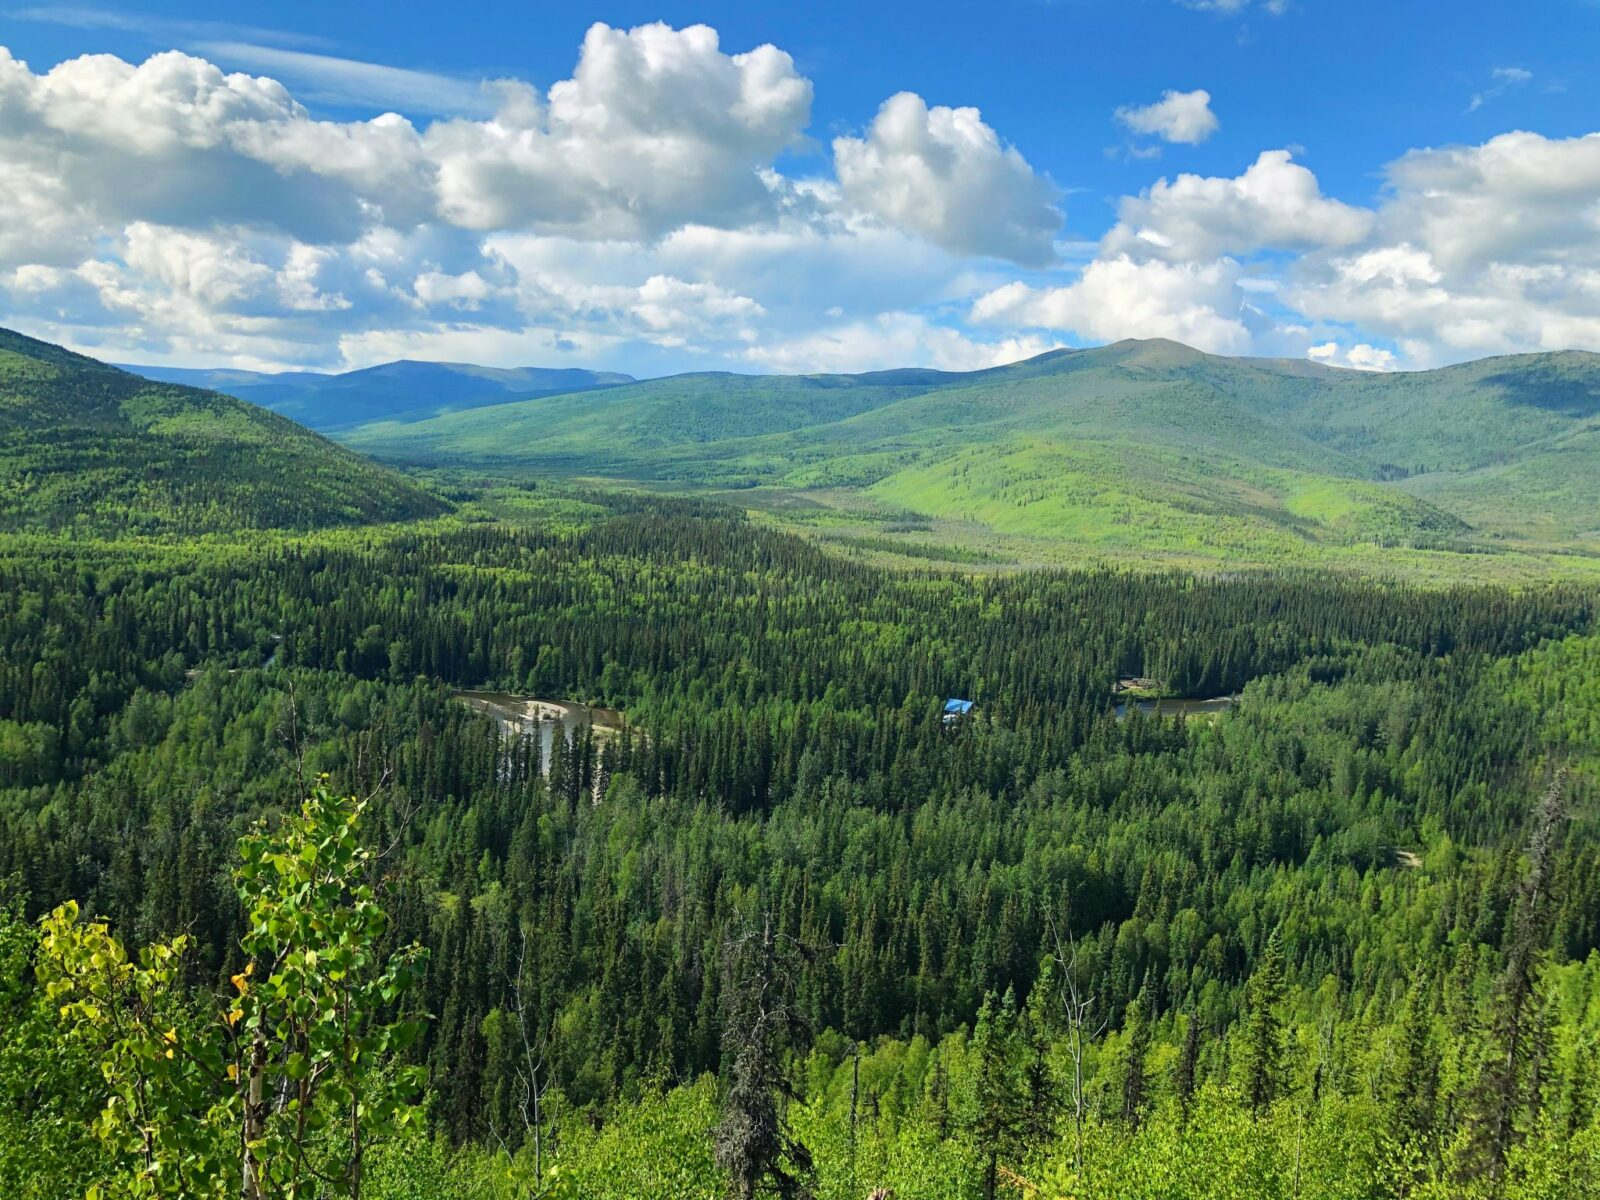 View of forested hillsides and a river below on a partly cloudy day from the angel rocks trail